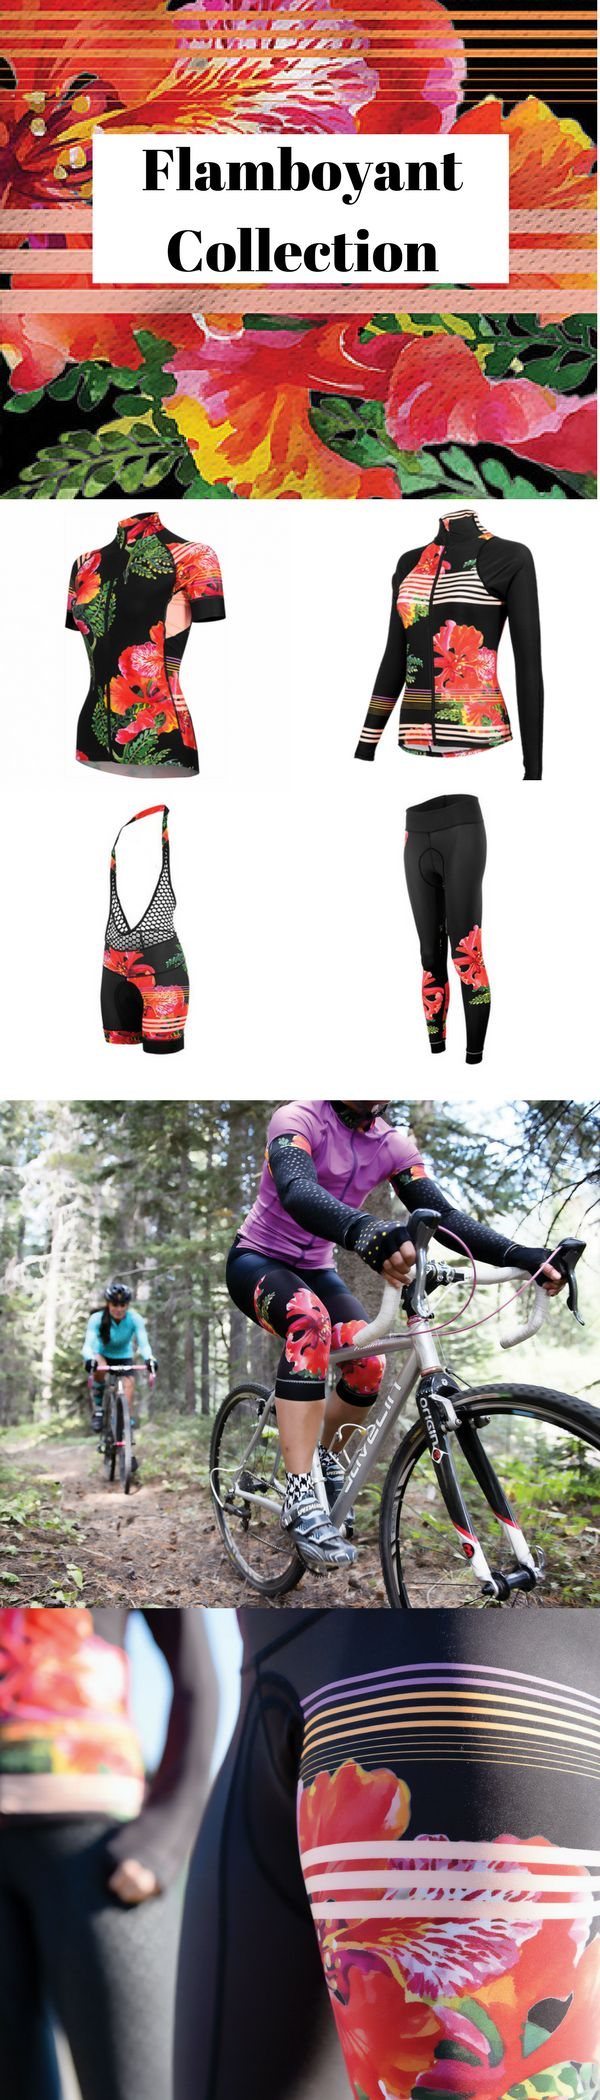 FASHIONABLE CYCLE GEAR MADE BY WOMEN FOR WOMEN! Perfect for women's cycling, we also have women's cycling jerseys for indoor cycling, road cycling, an assortment of cycling gear, cycling jerseys, fashion forward cycling clothes and kits.